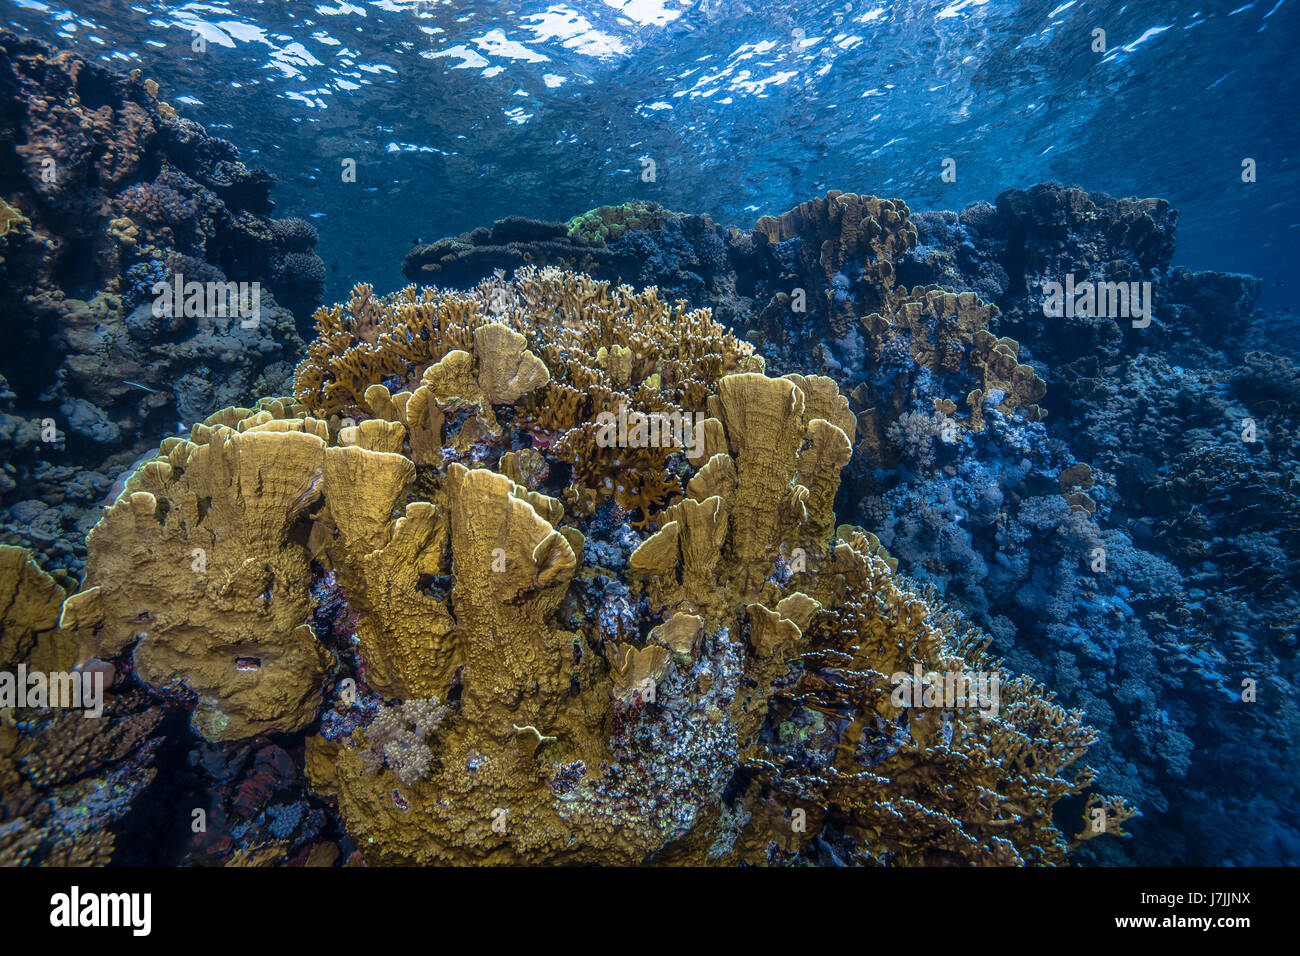 Seascape image of blade fire coral (Millepora complanata) colonies along a wall reef in the Red Sea off the coast - Stock Image